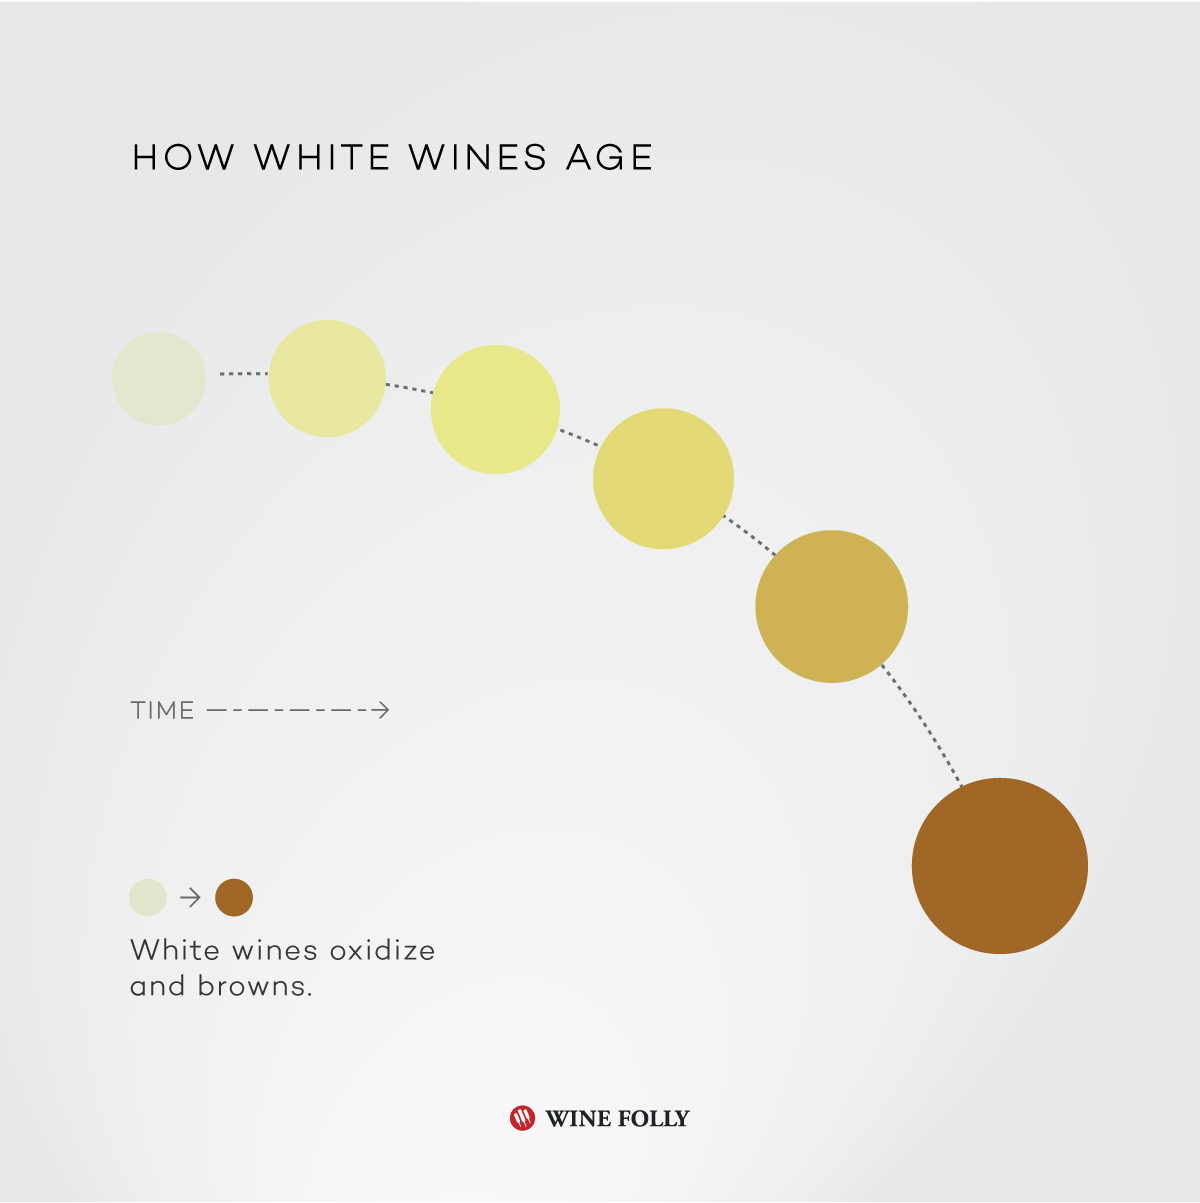 How white wines age - infographic by Wine Folly